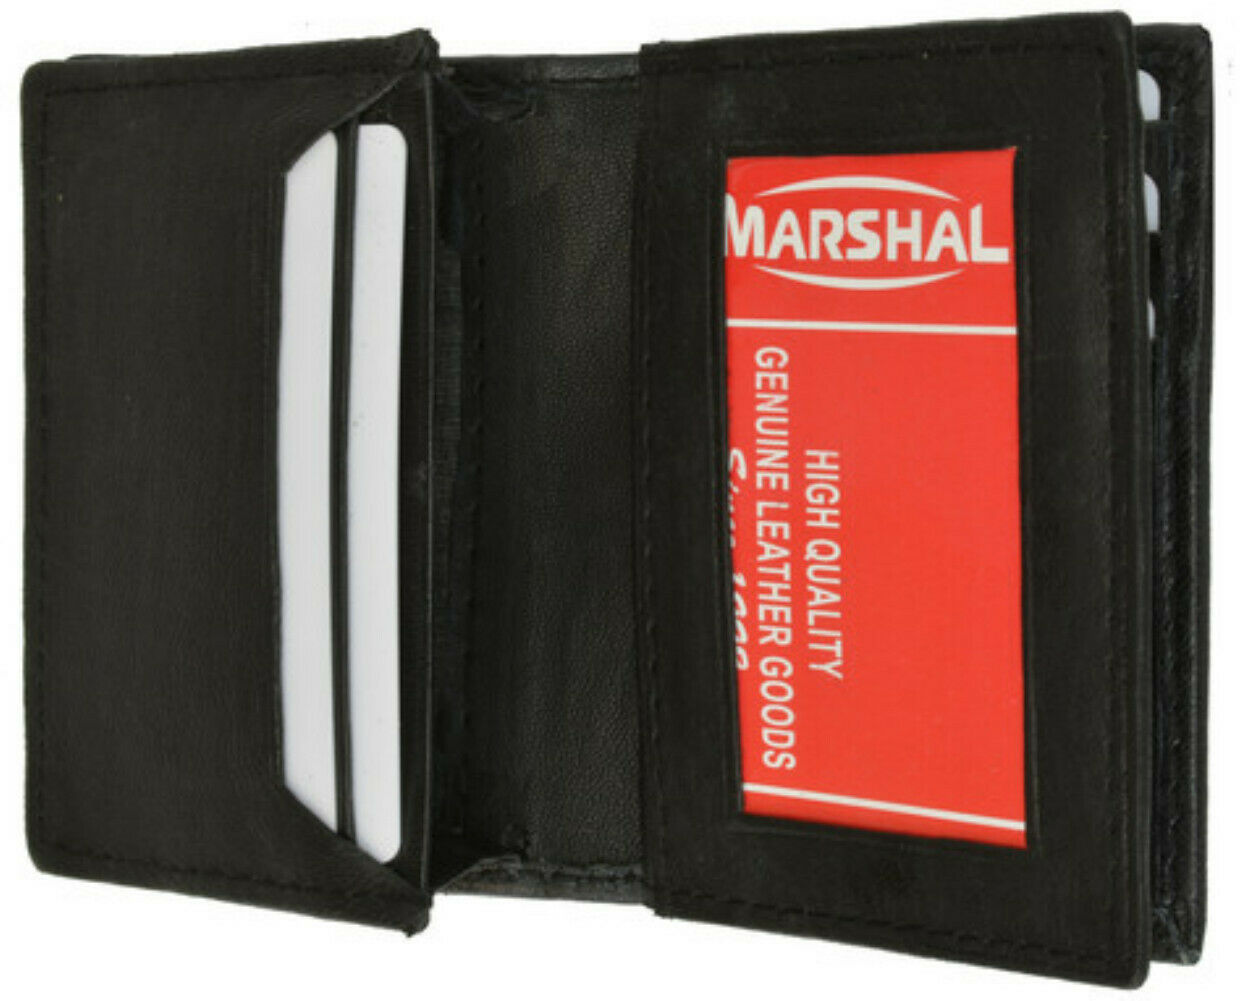 Money and Business Card holder - Style 1157 - Black